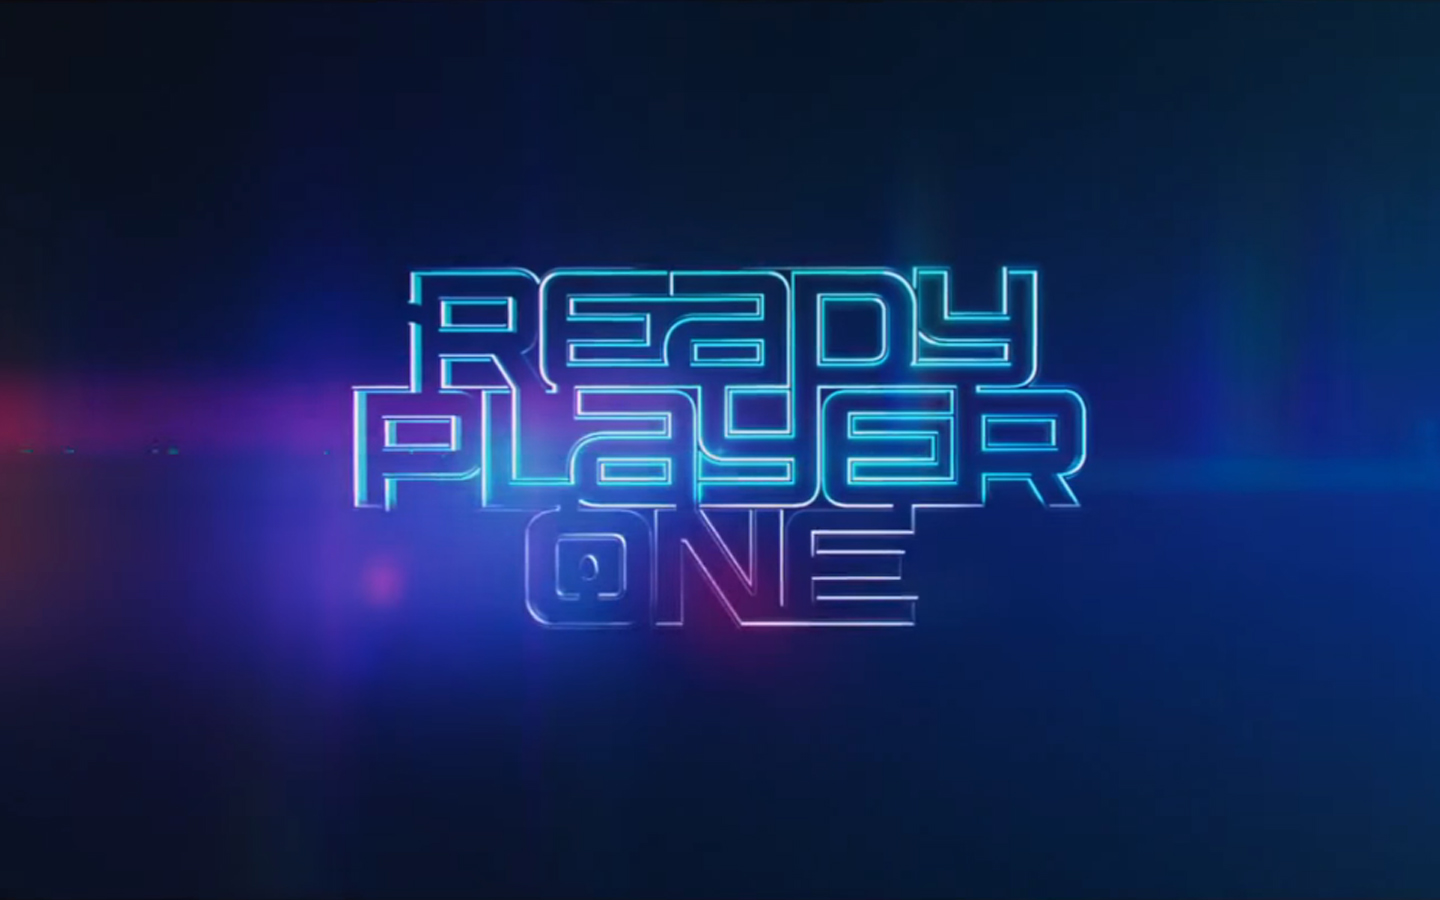 Free Download Ready Player One Trailer Pixel Crumb 1440x900 For